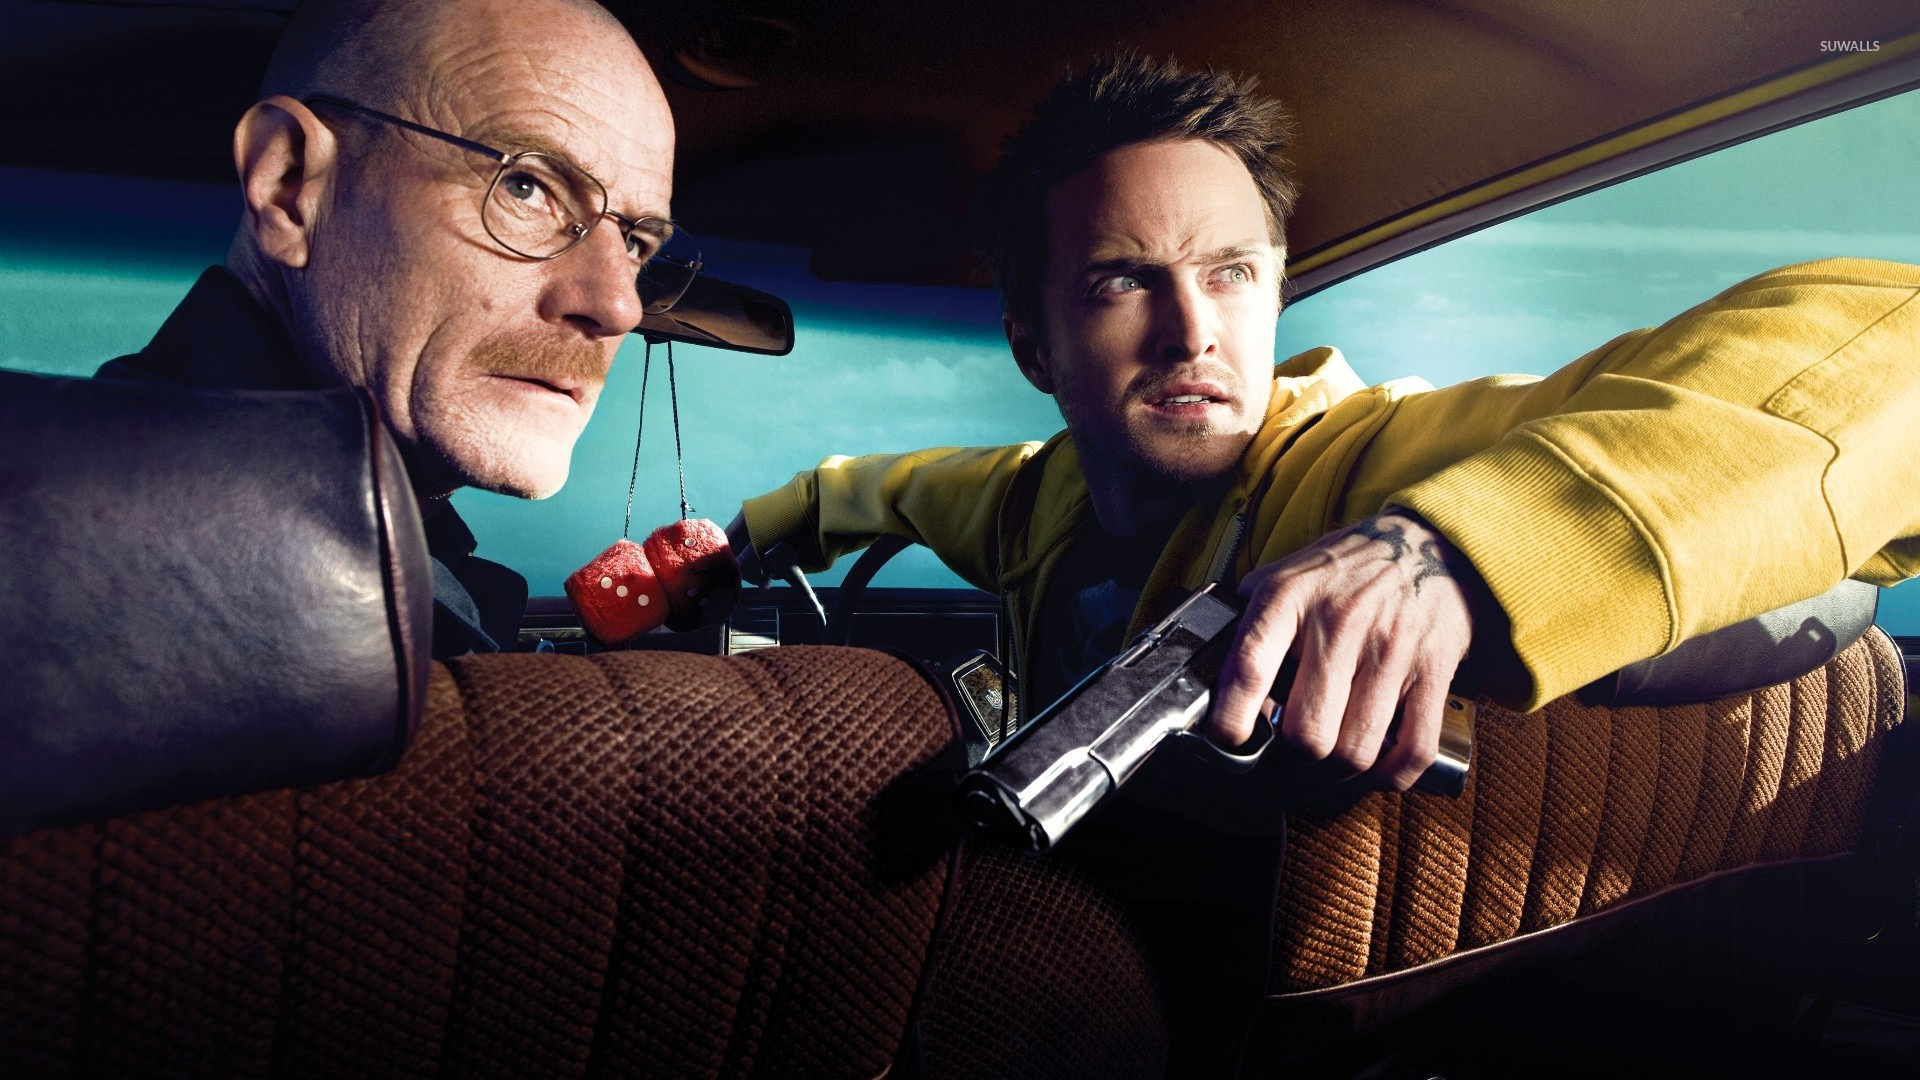 Breaking Bad background picture